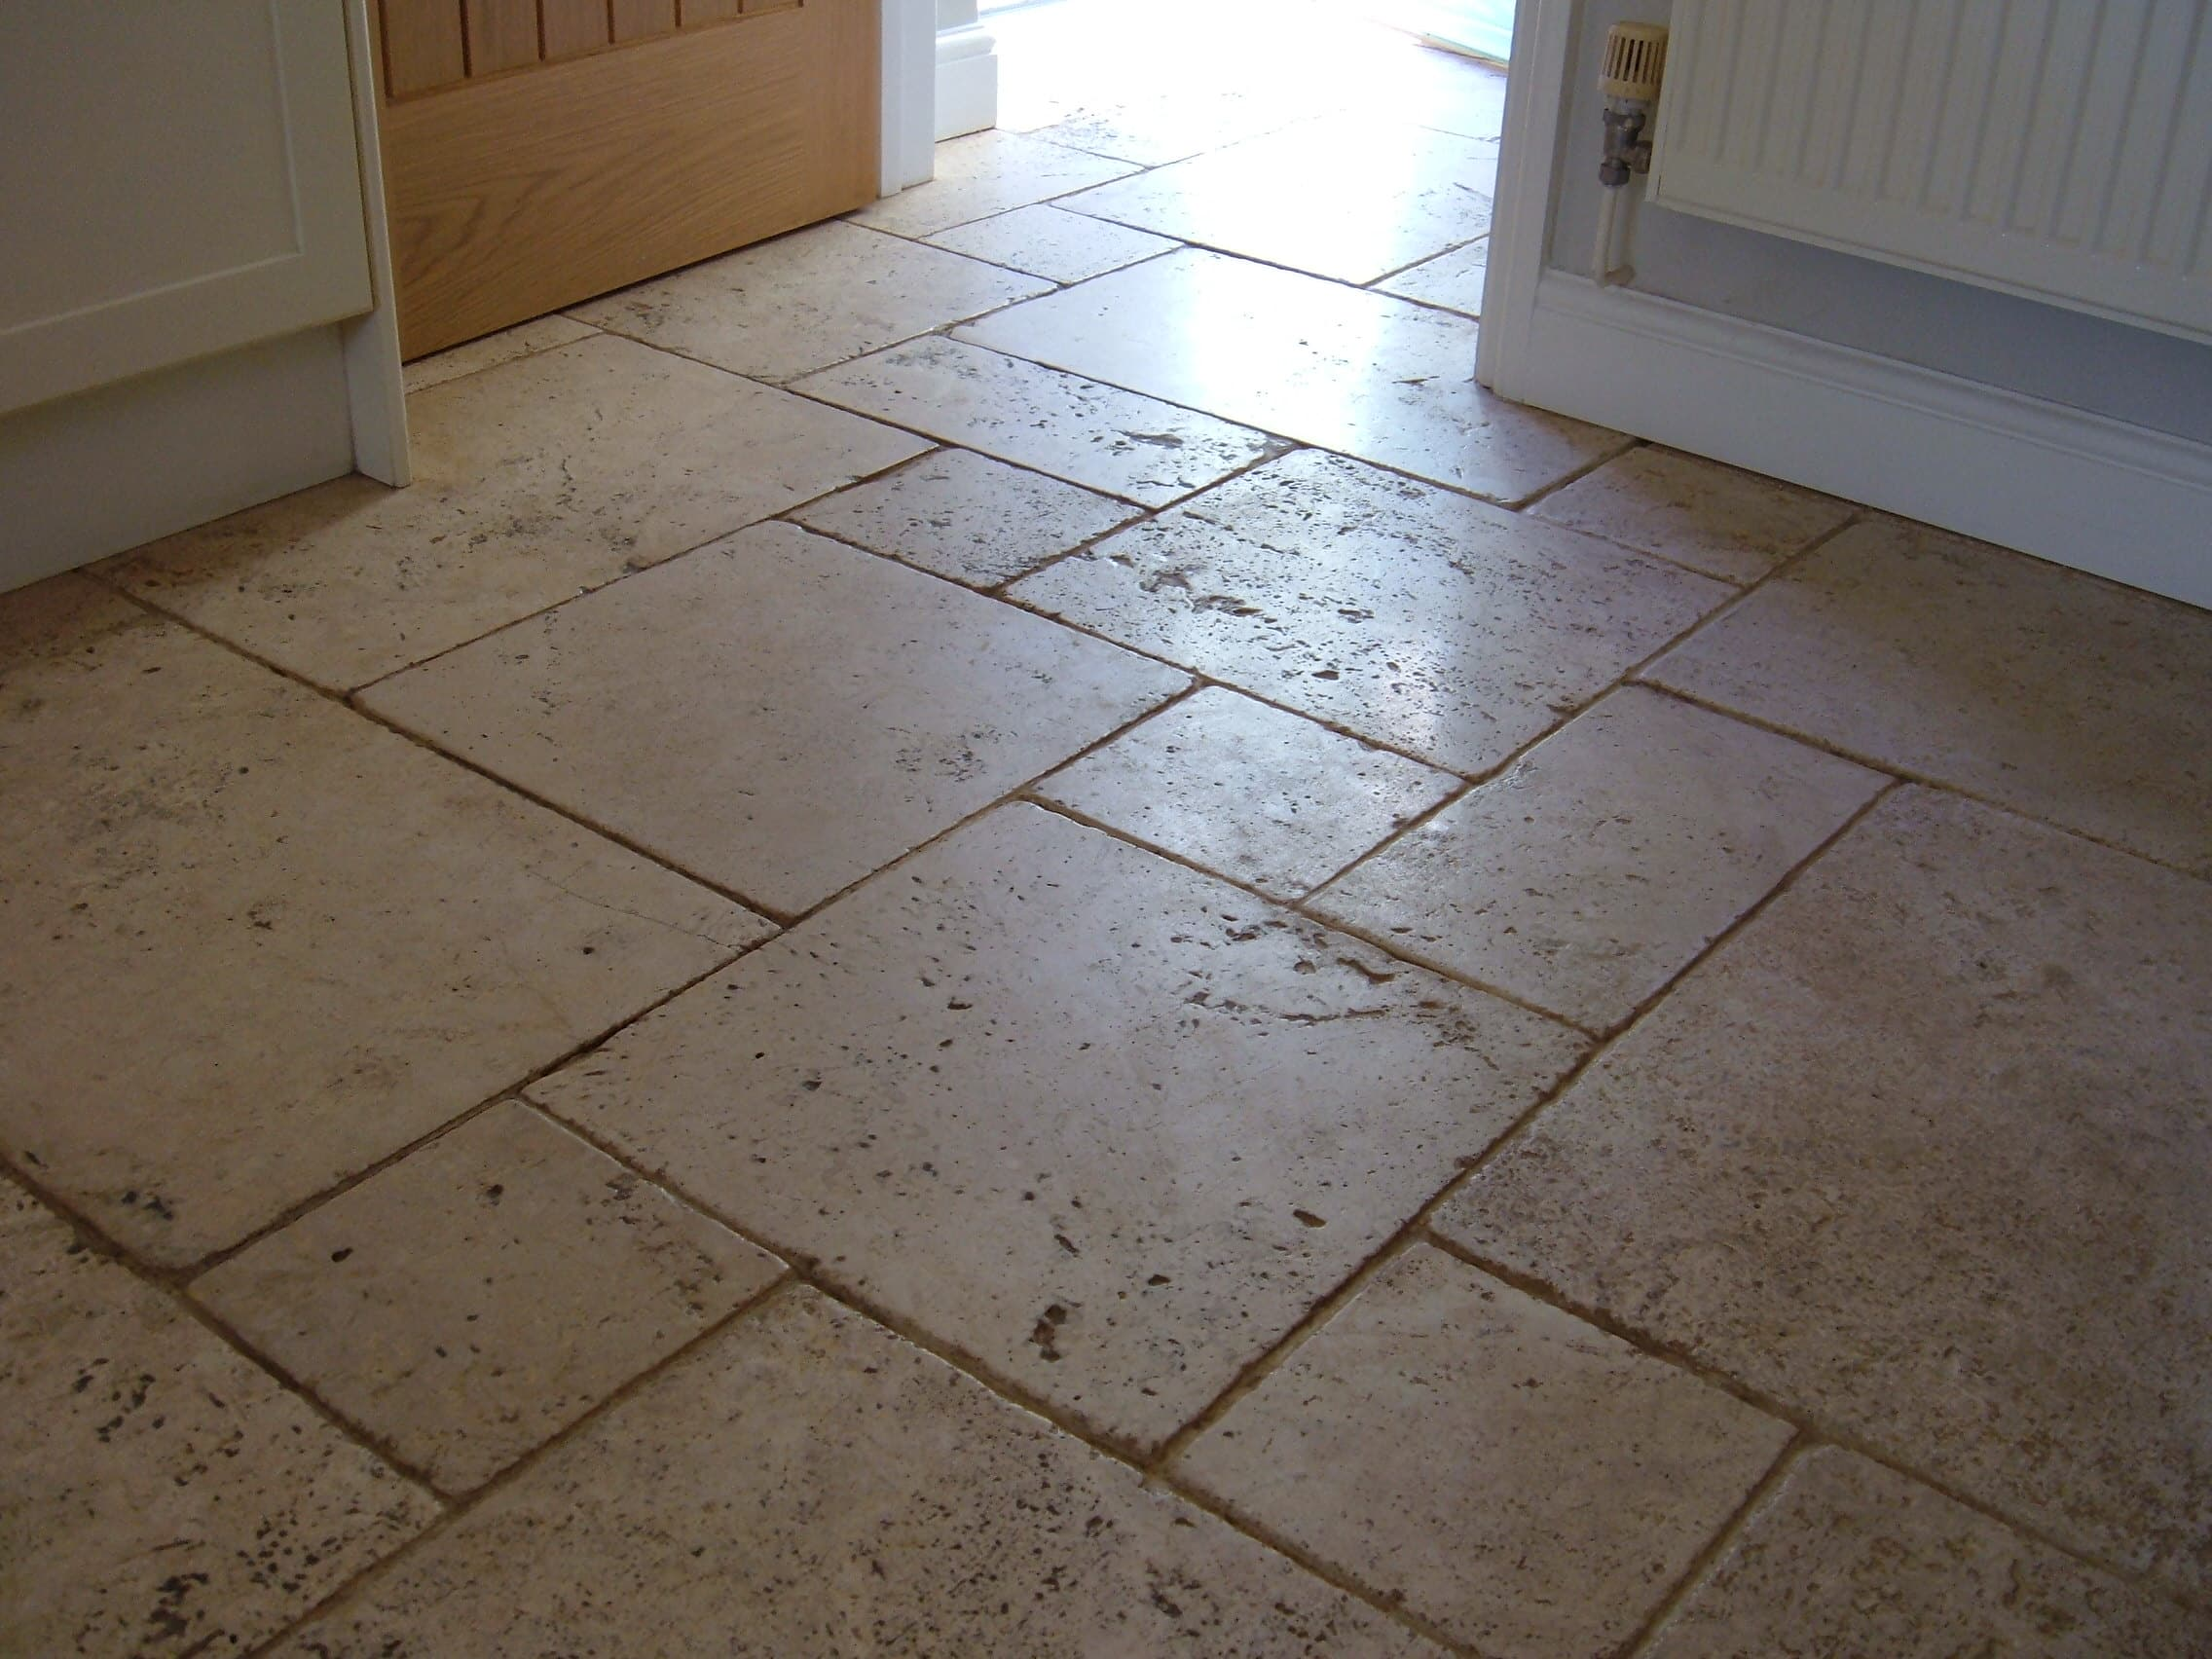 Travertine Floor in Attleborough Before Cleaning